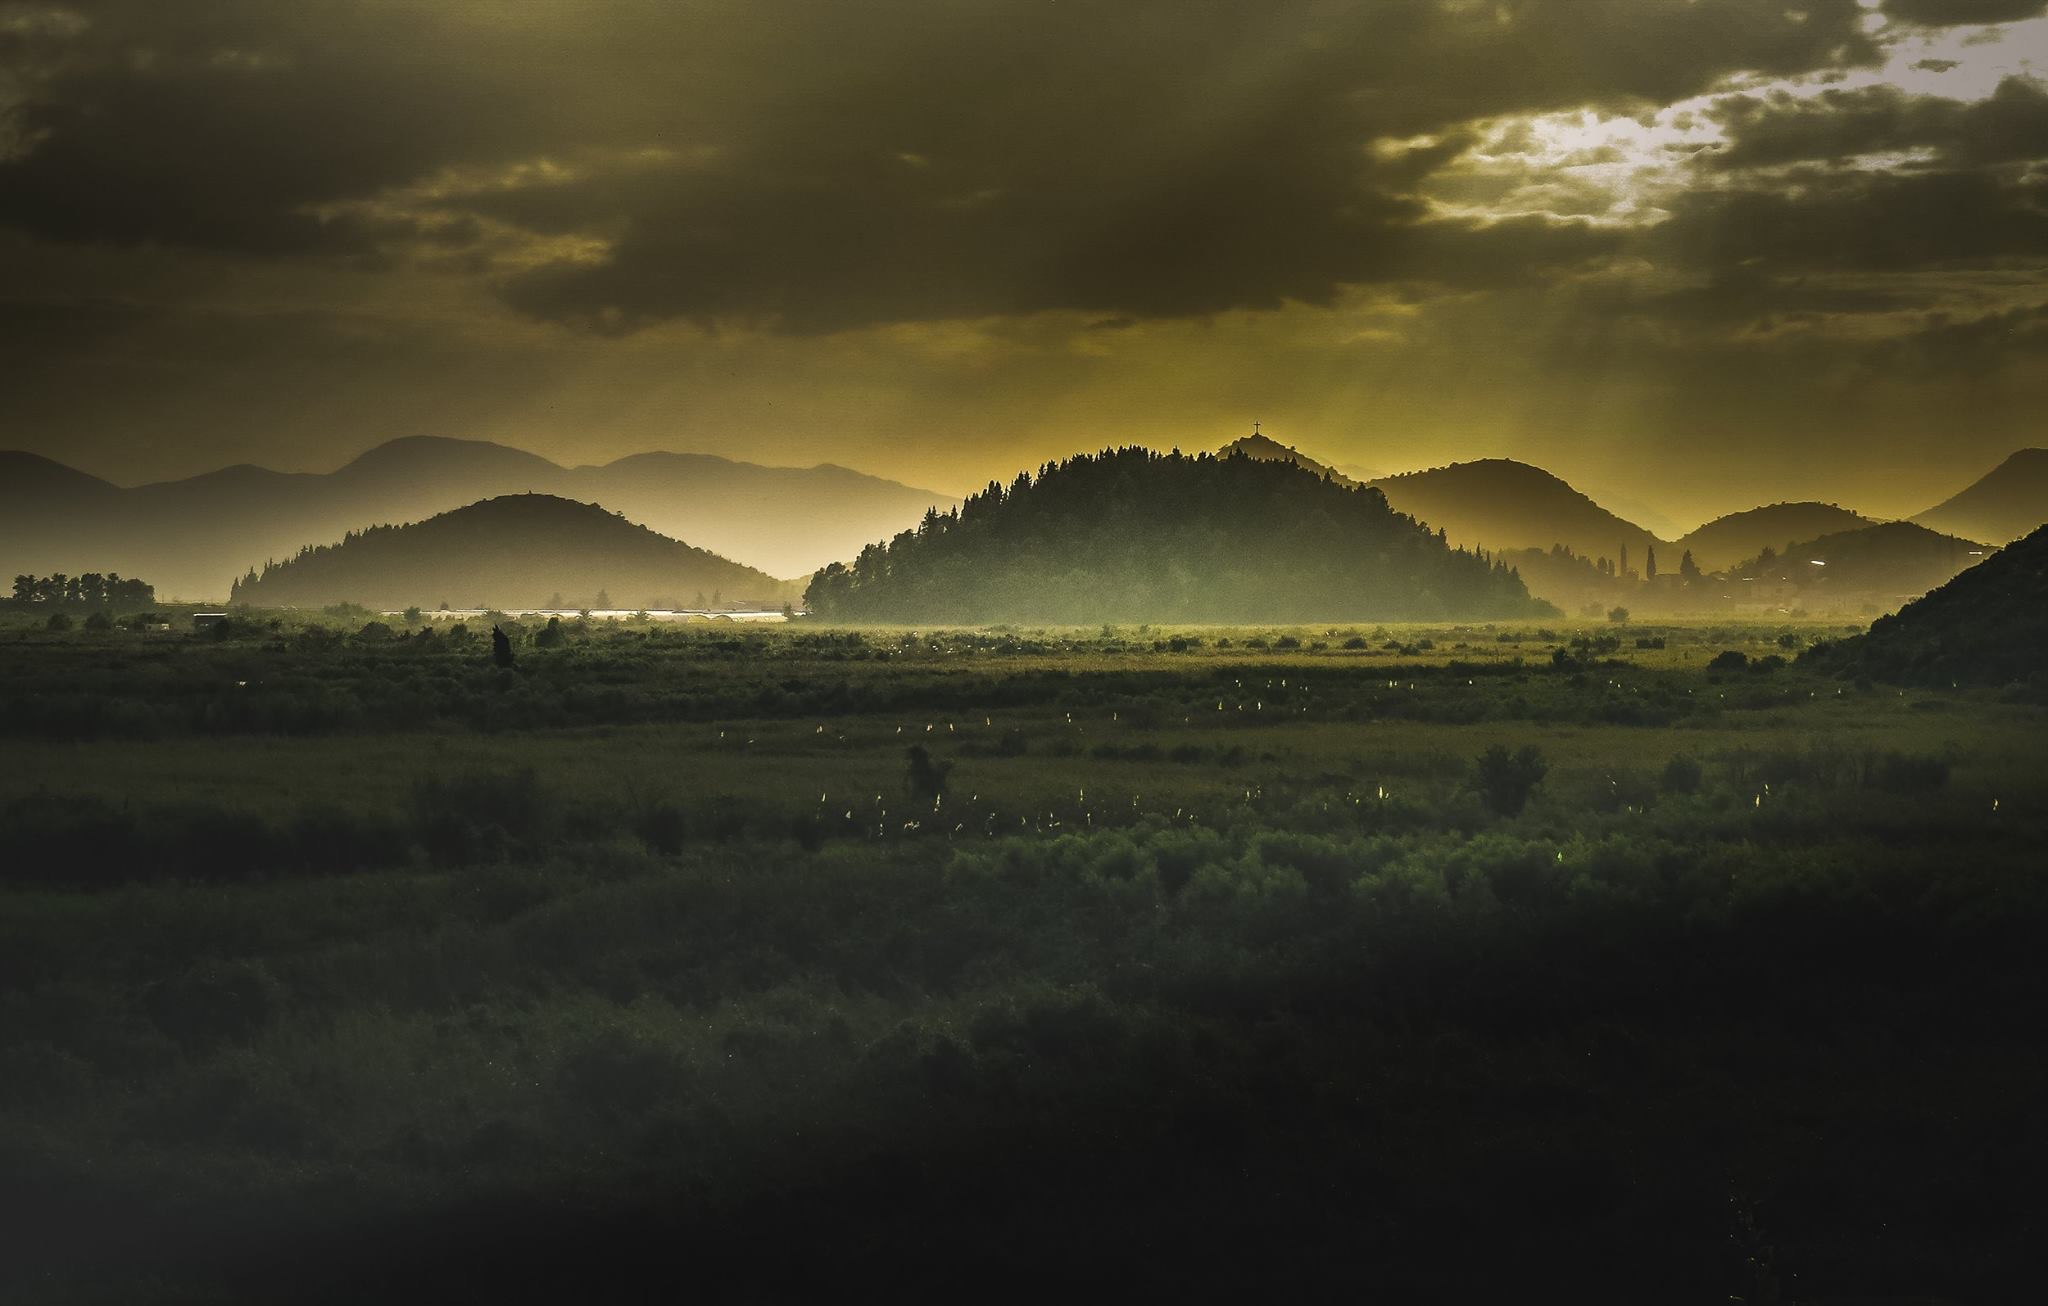 A photo taken from the perspective of a cemetery in Bosnian, featuring rolling, misty hills on a thickly cloudy day; In the foreground is a seemingly endless expanse of field. The whole photo is in tones of deep yellows, greens and blacks.